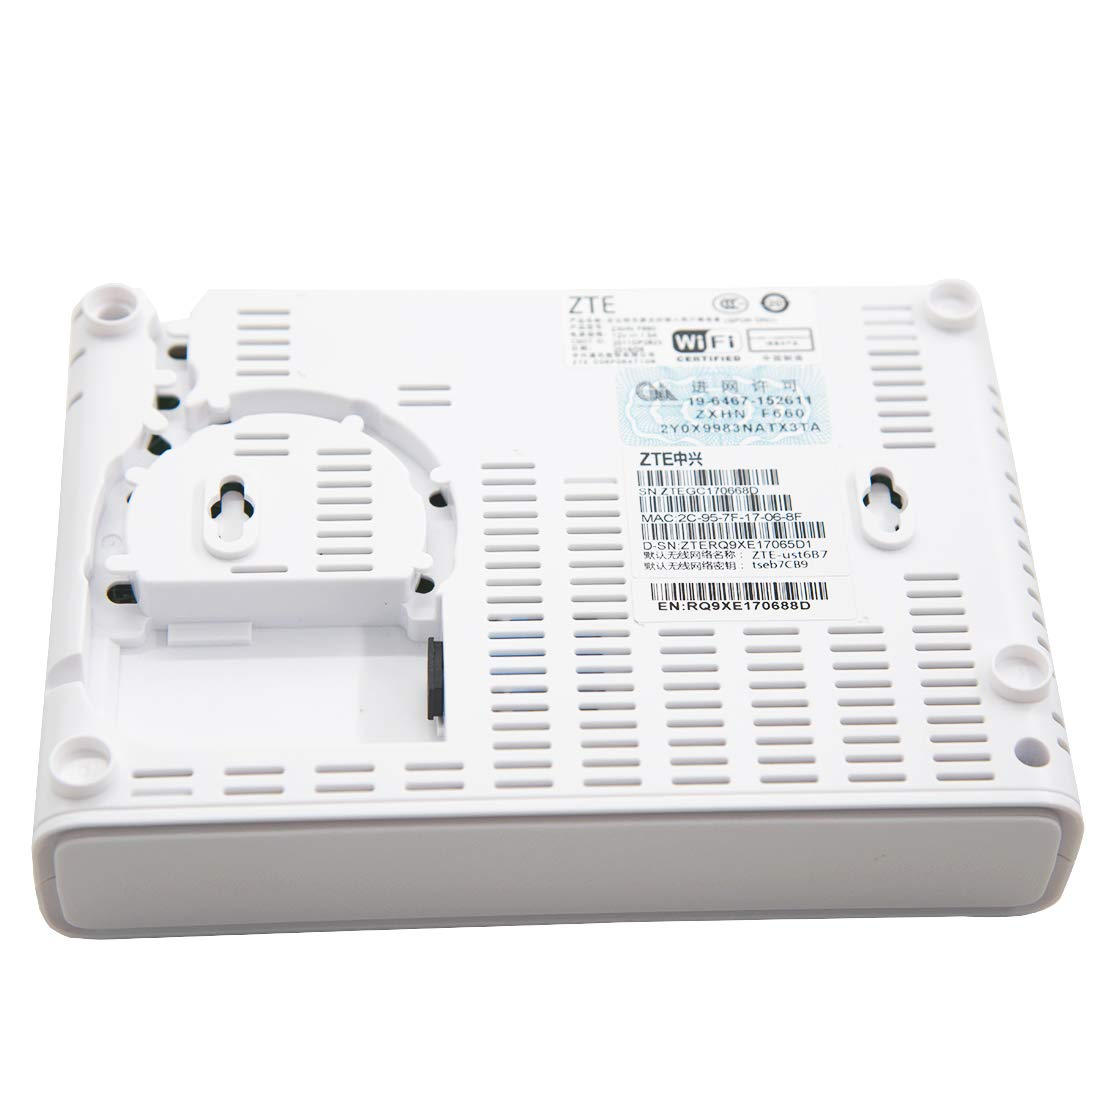 Amazon com: CATVSCOPE GPON ONU F660 Version 5 0 lITU-T G 984 with